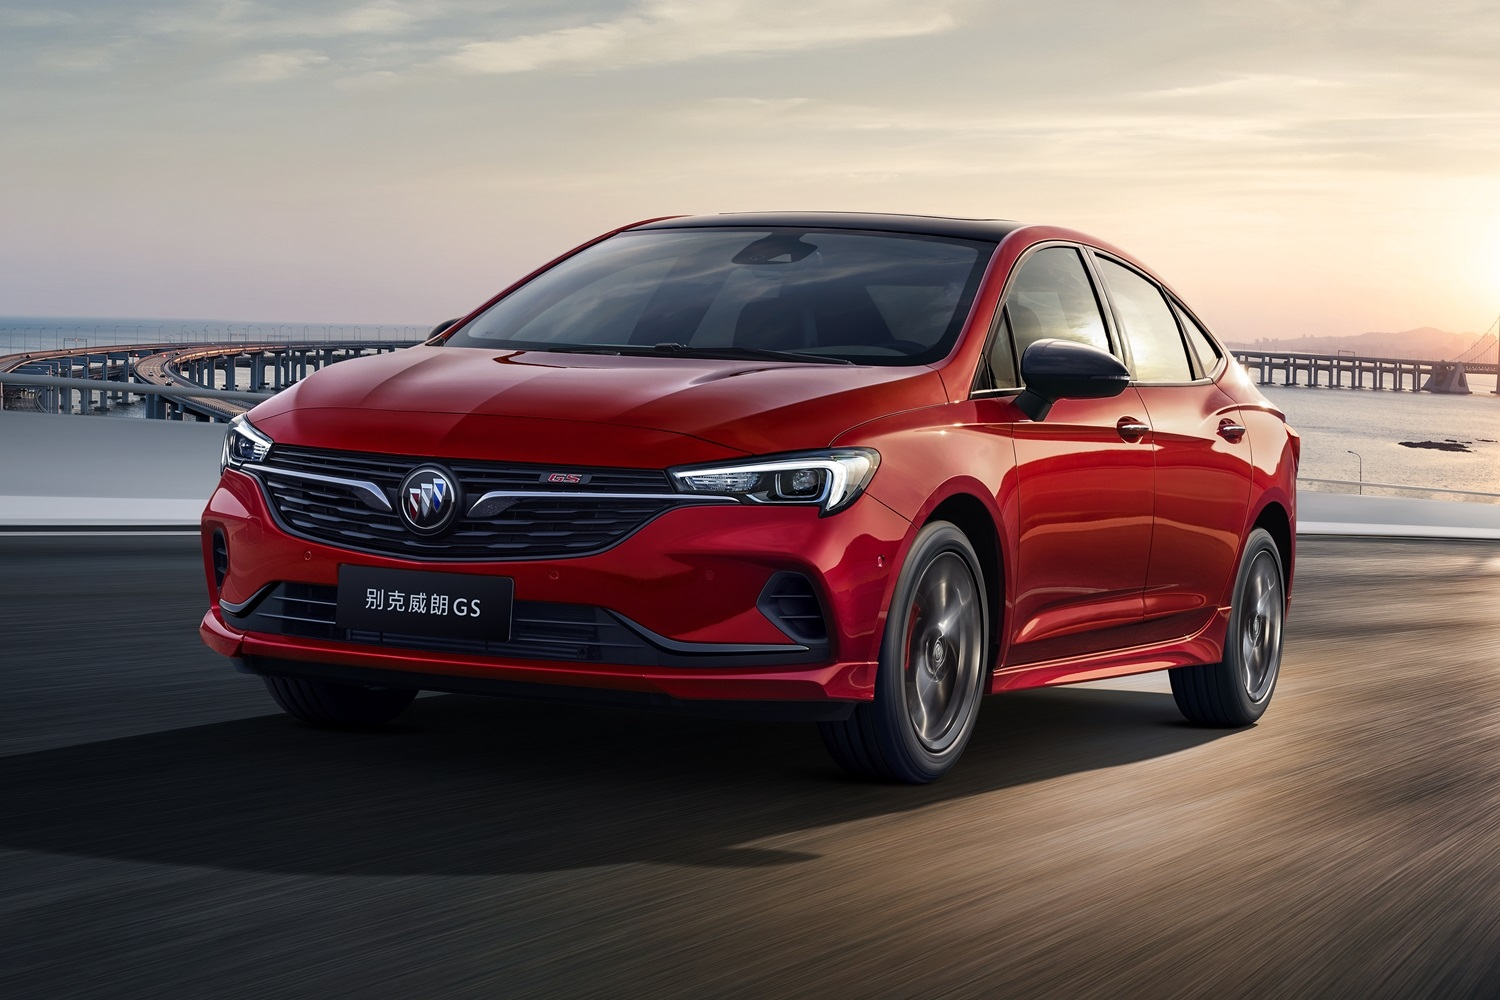 New 2021 Buick Verano Gs Launches In China   Gm Authority New 2021 Buick Verano Wheels, Engine, Dimensions